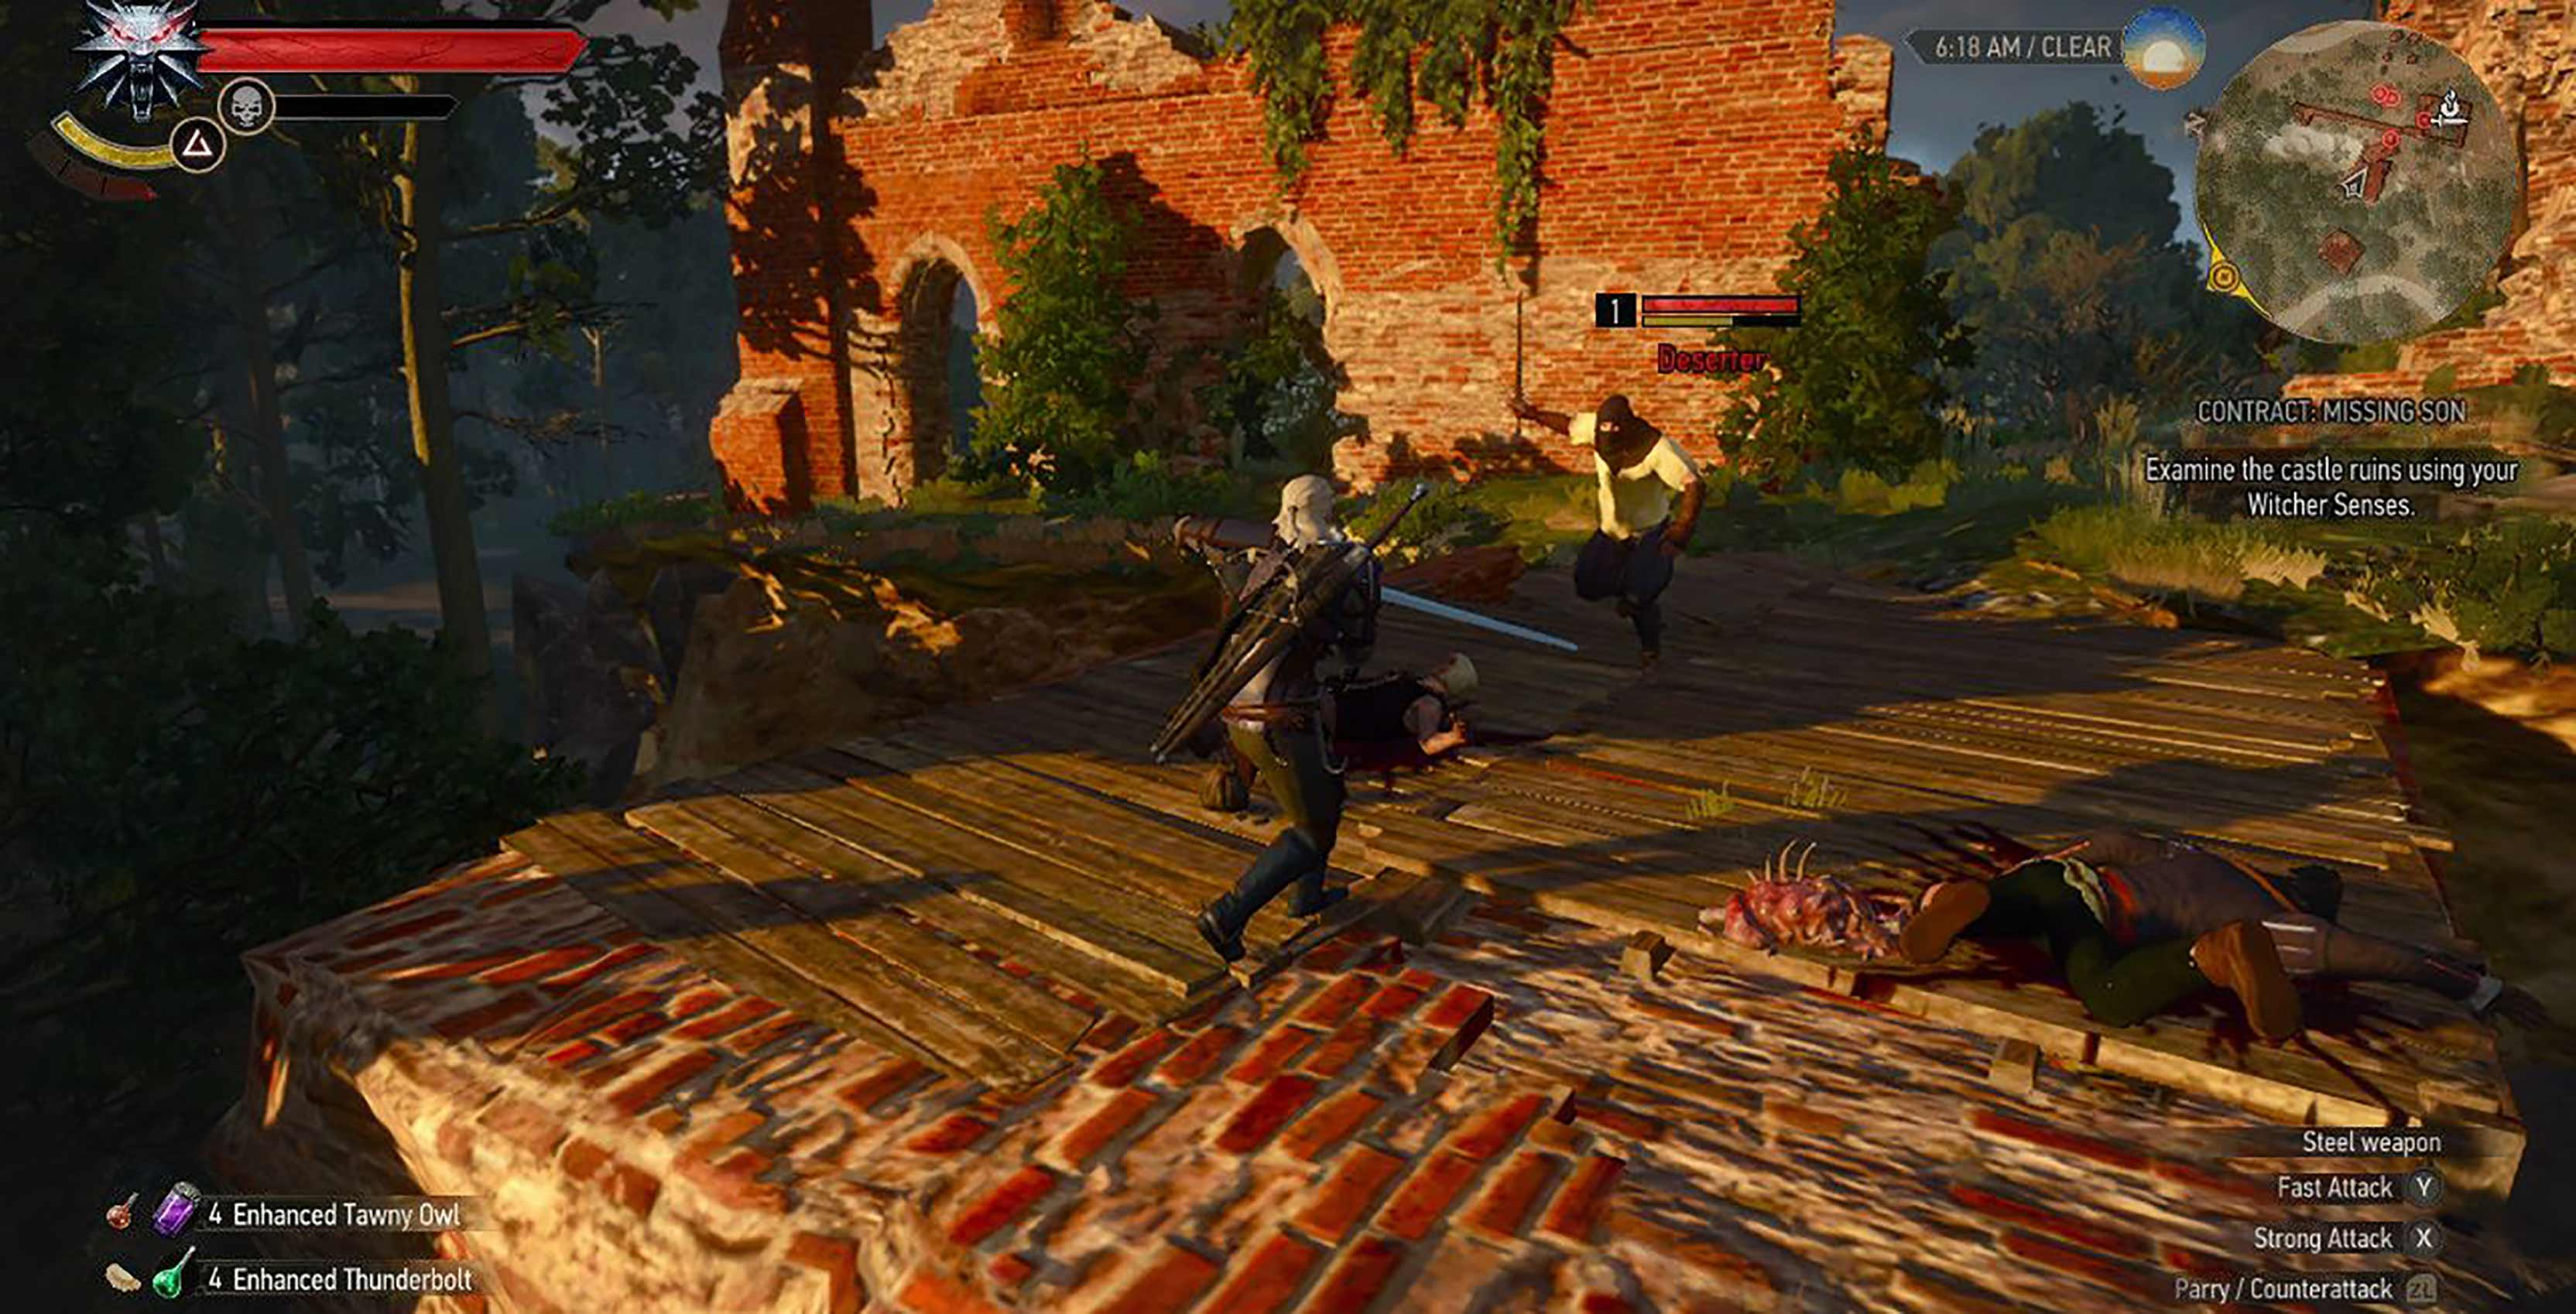 The Witcher 3 combat